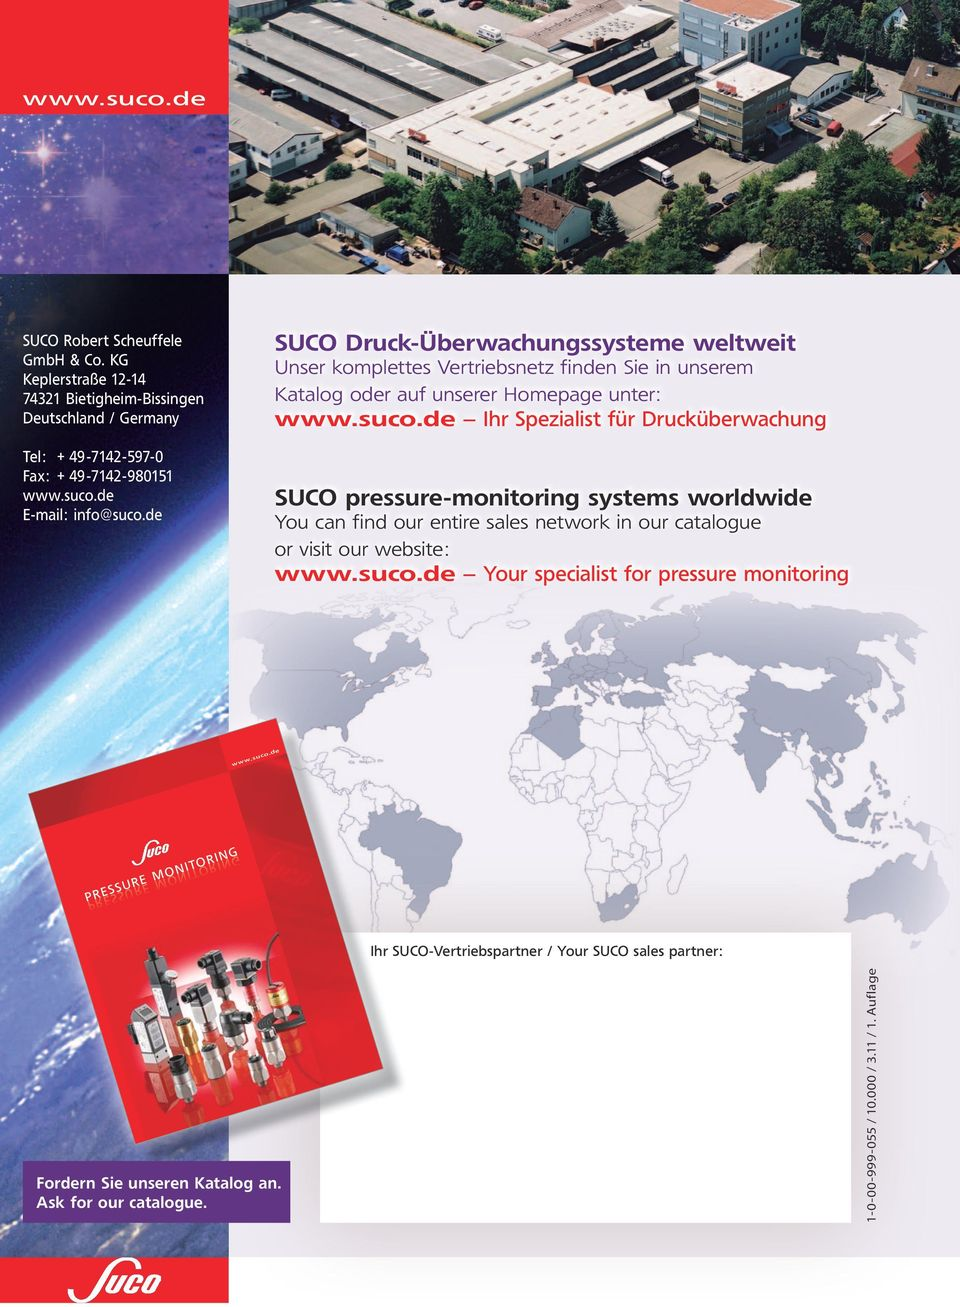 Drucküberwachung SUCO pressure-monitoring systems worldwide You can find our entire sales network in our catalogue or visit our website Your specialist for pressure